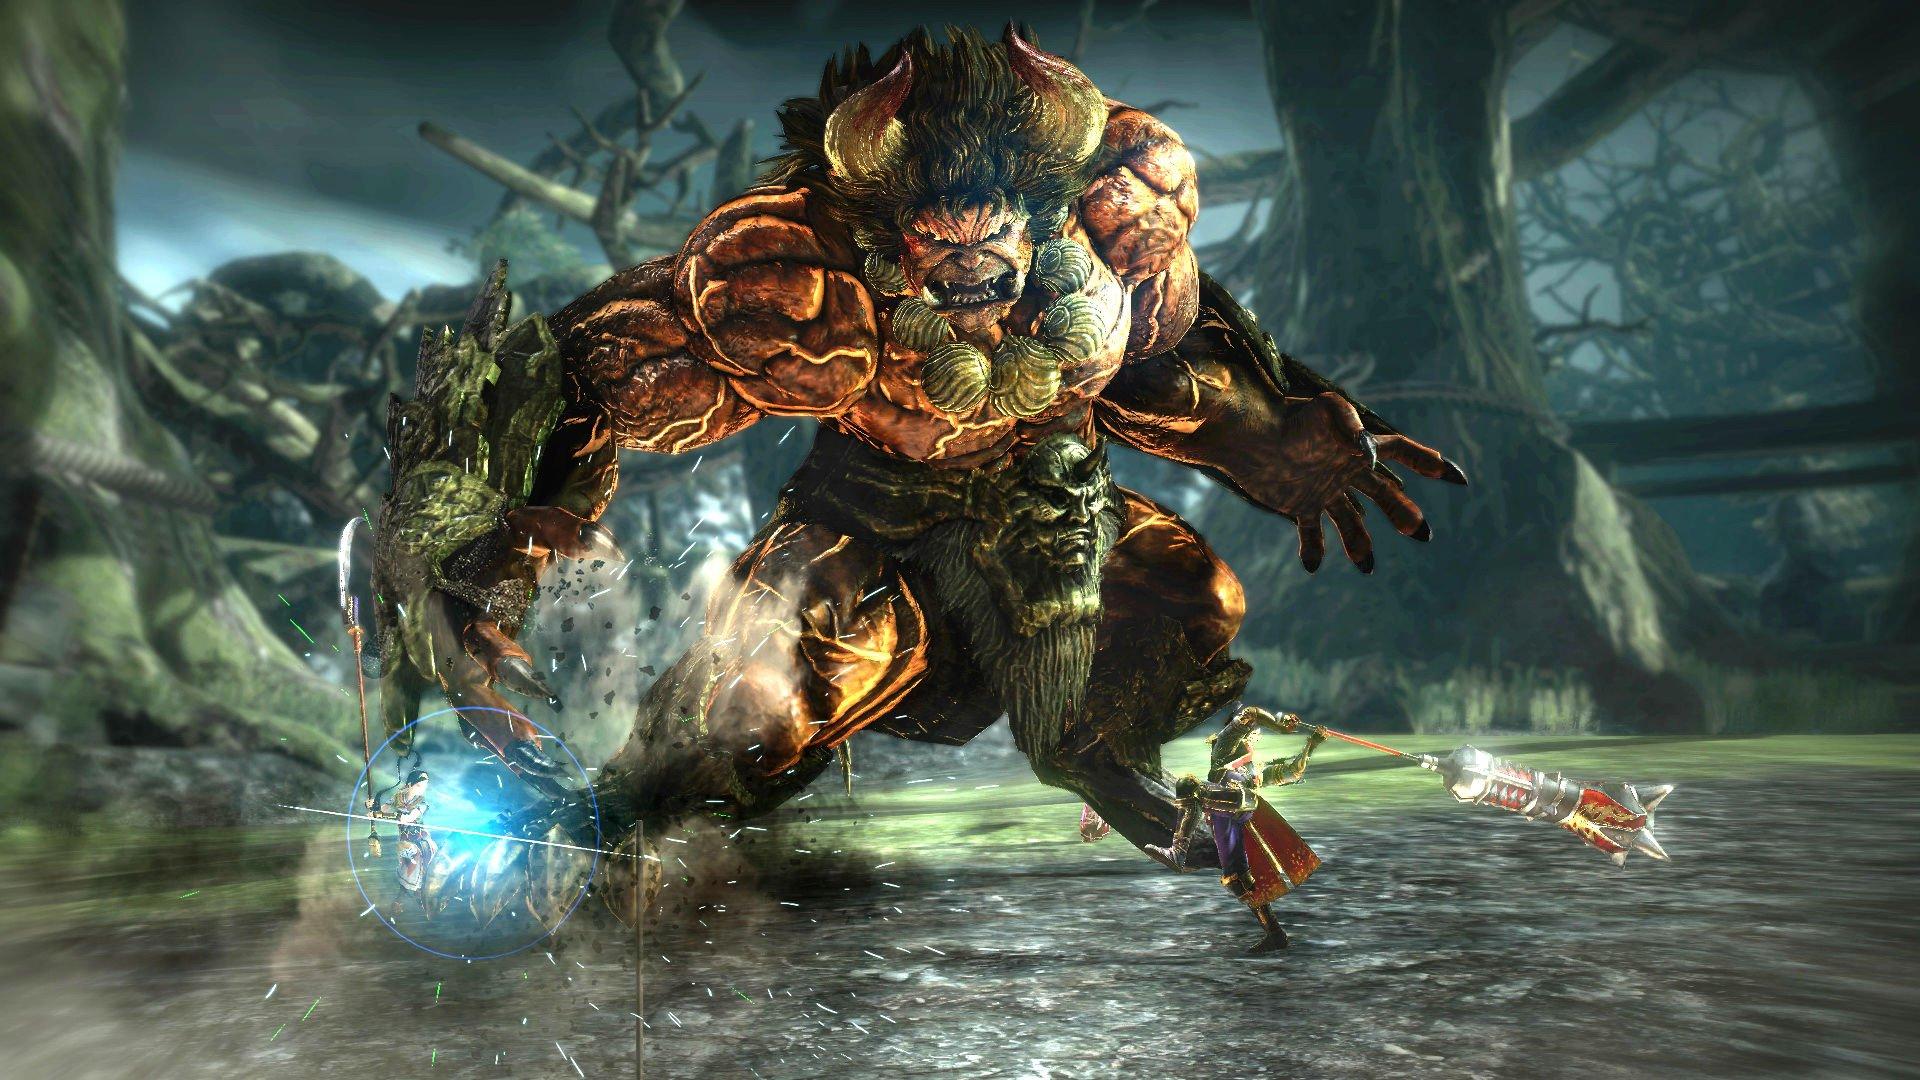 Toukiden Action Rpg Fantasy Hunting Adventure Action Fighting